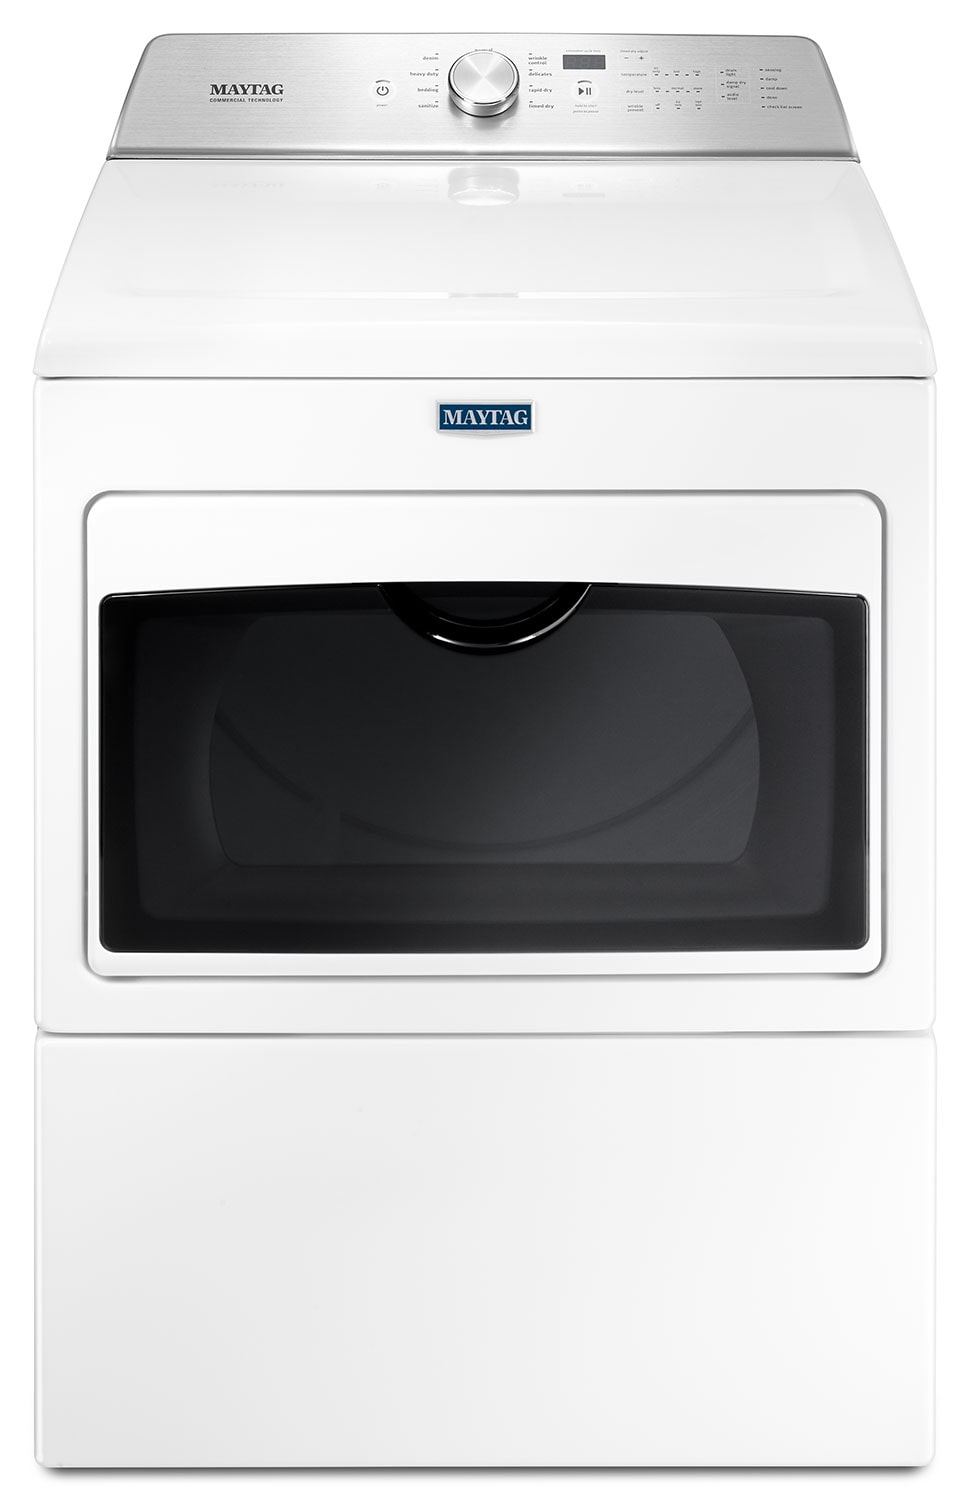 Washers and Dryers - Maytag White Electric Dryer (7.4 Cu. Ft.) - YMEDB765FW